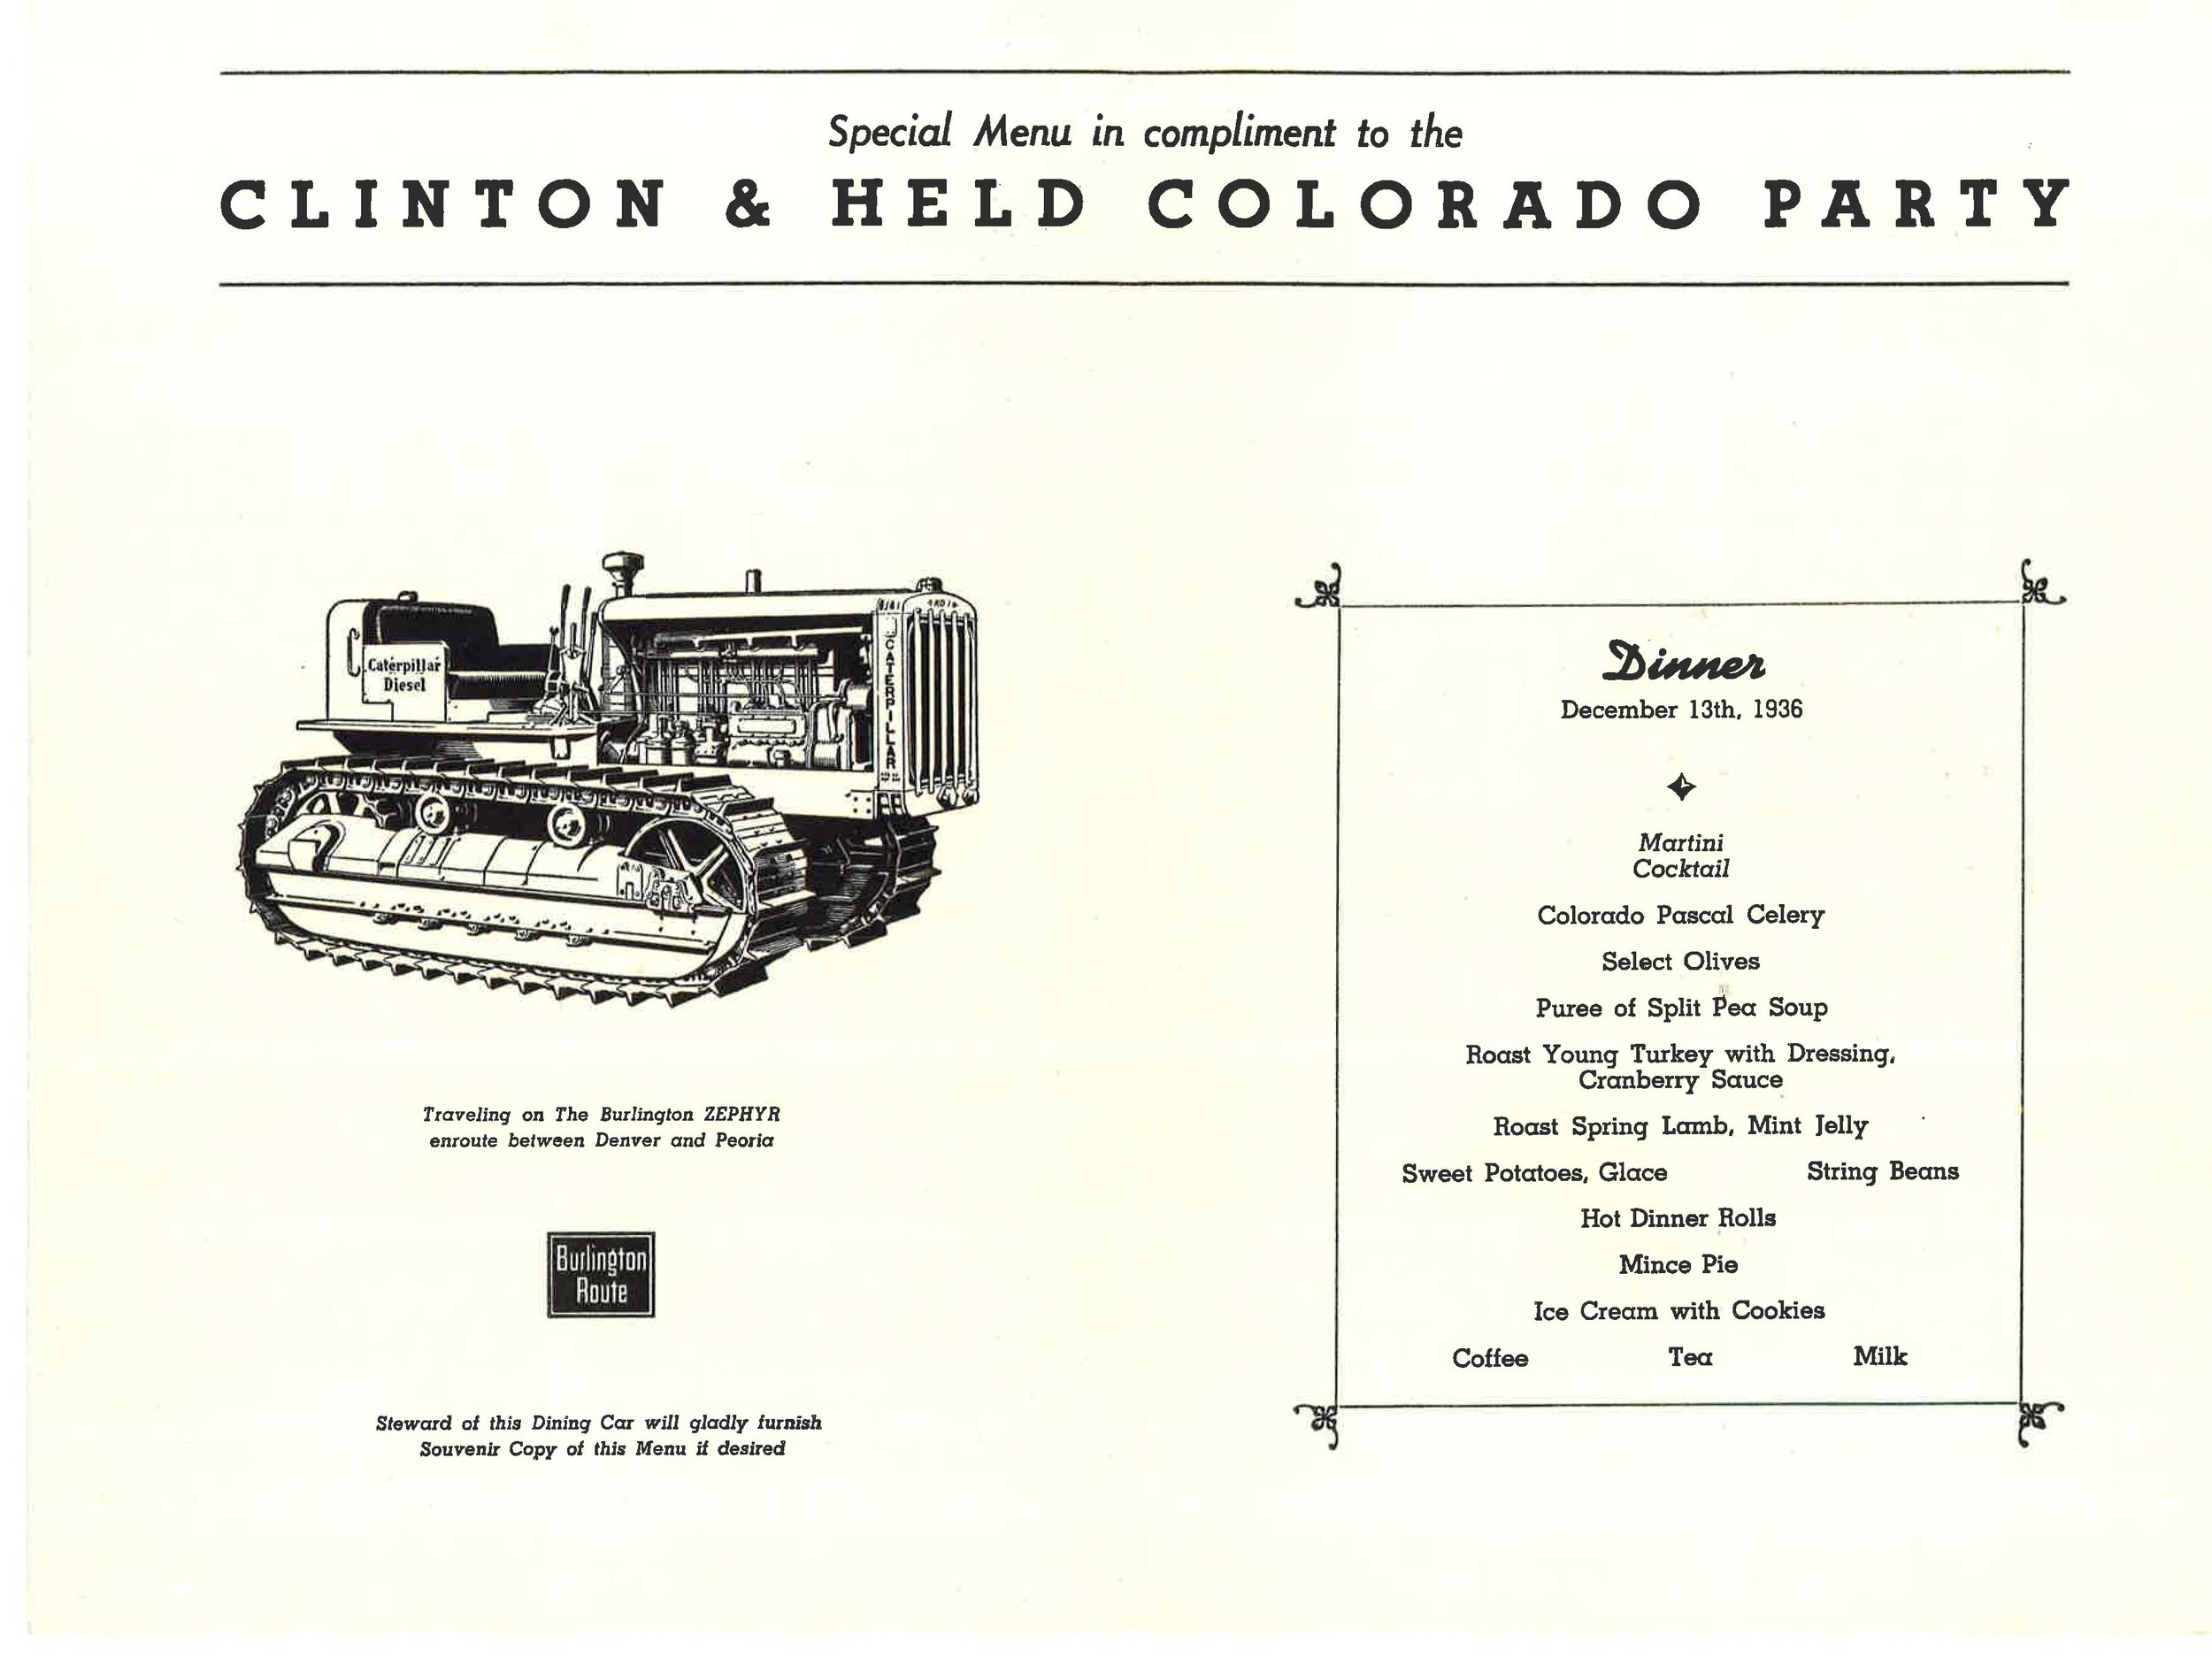 Burlington+Clinton+&+Held+Colorado+Party+Dinner+Menu+12-36 2.jpg